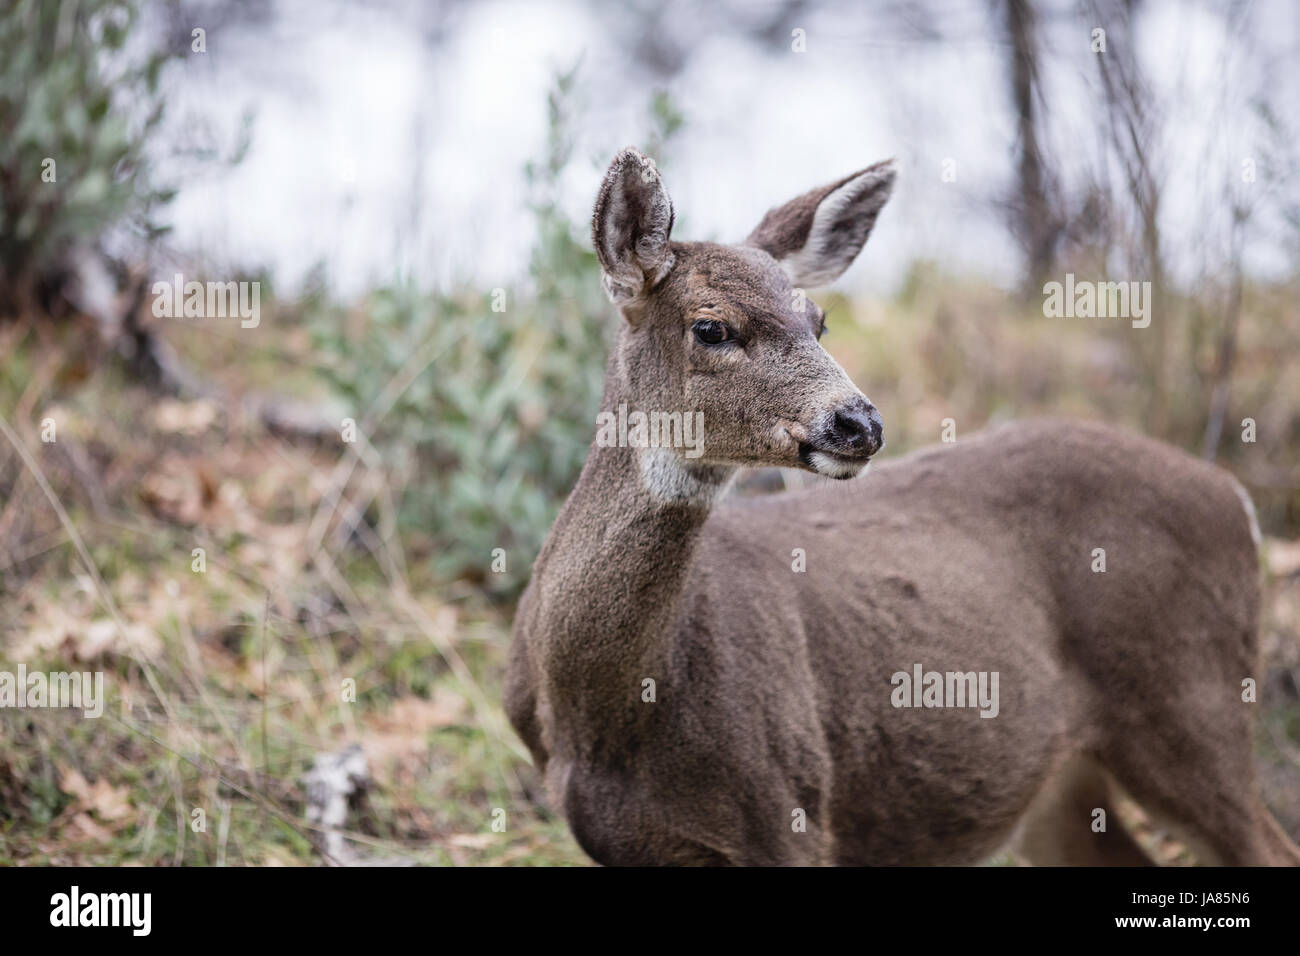 Portrait of a female deer in the wild looking at camera. - Stock Image